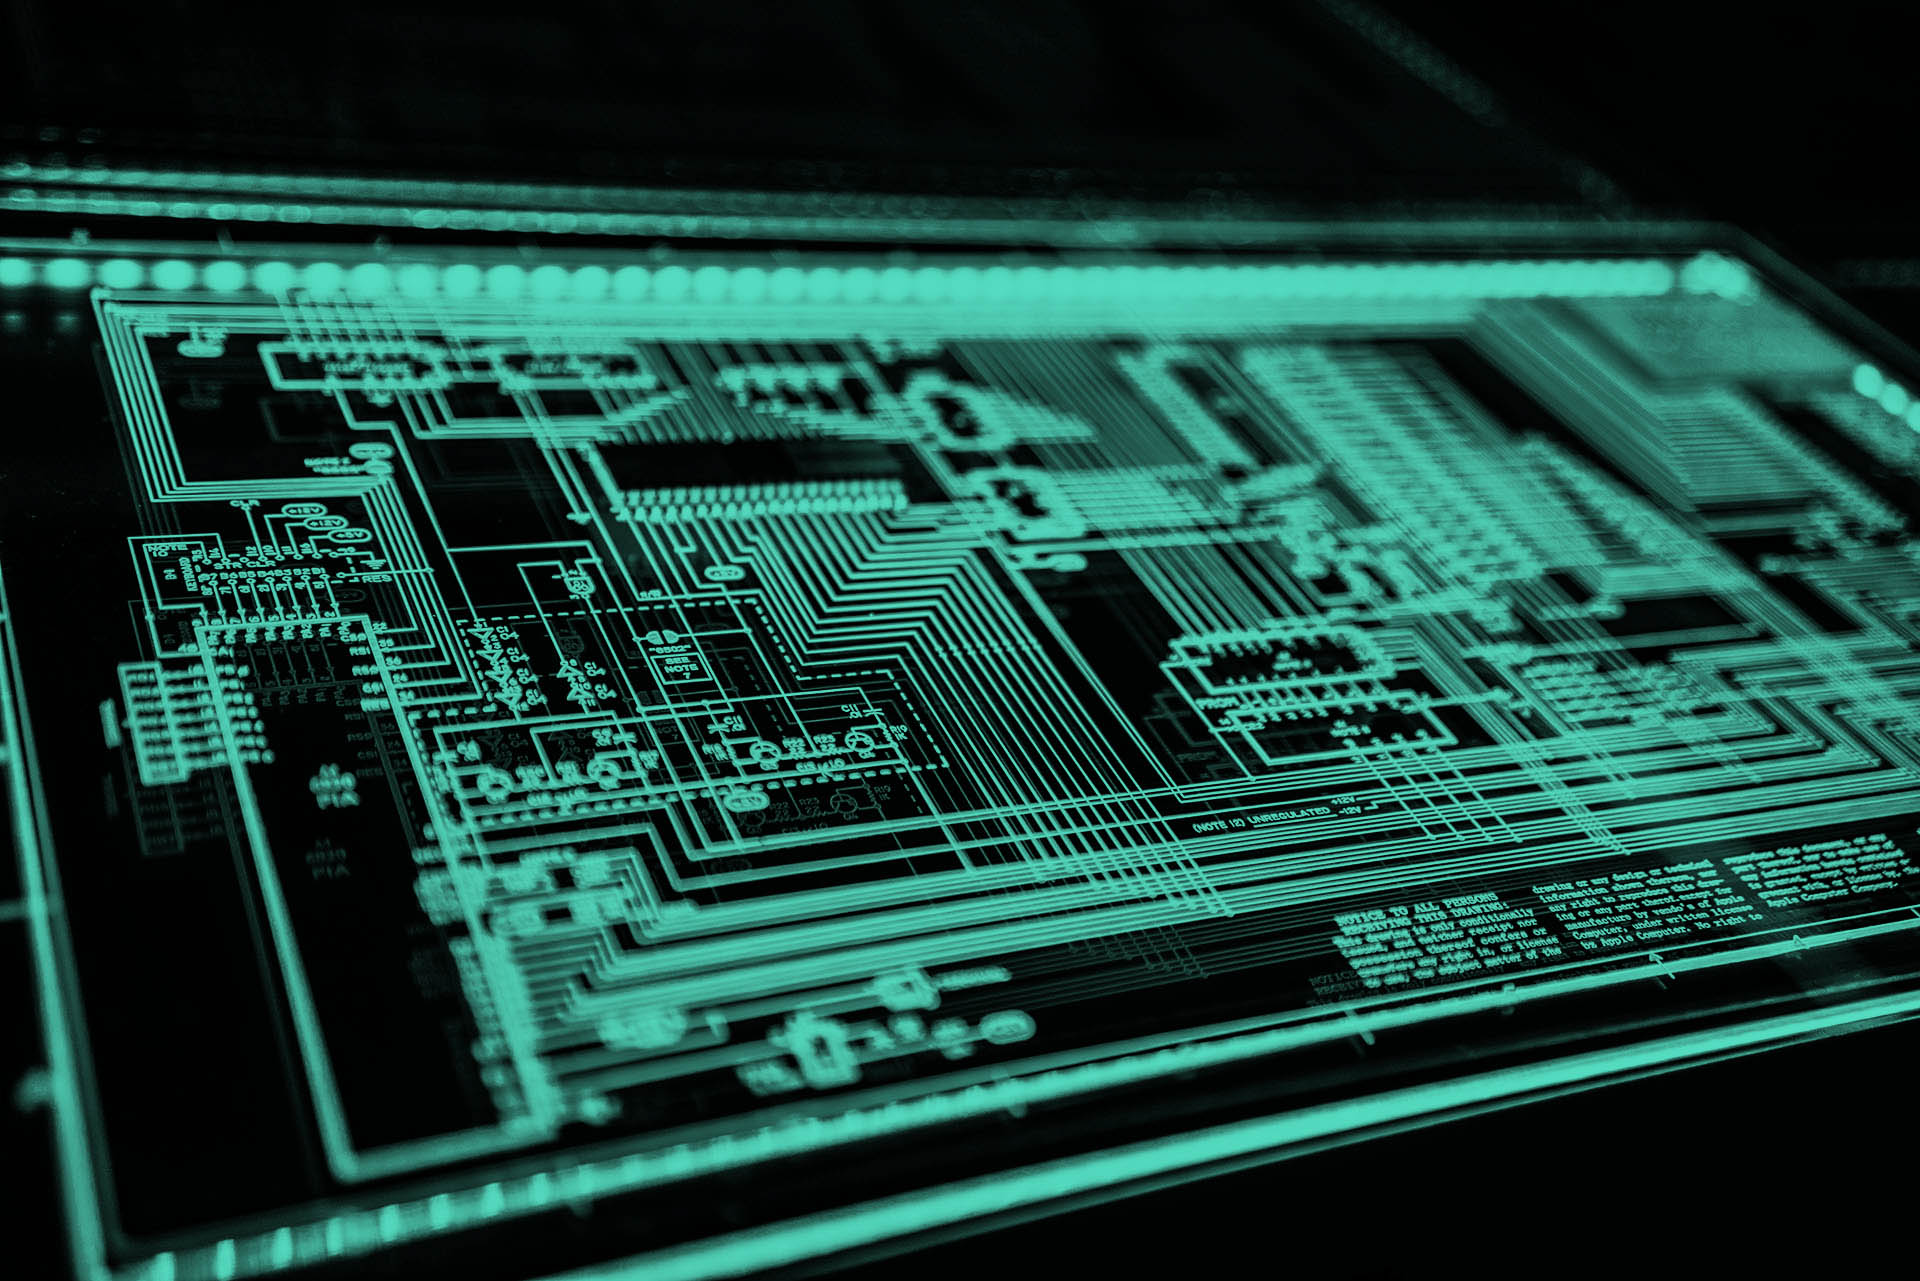 Something that looks like a computer motherboard with chips and wires glows green. The rest of the picture is black.